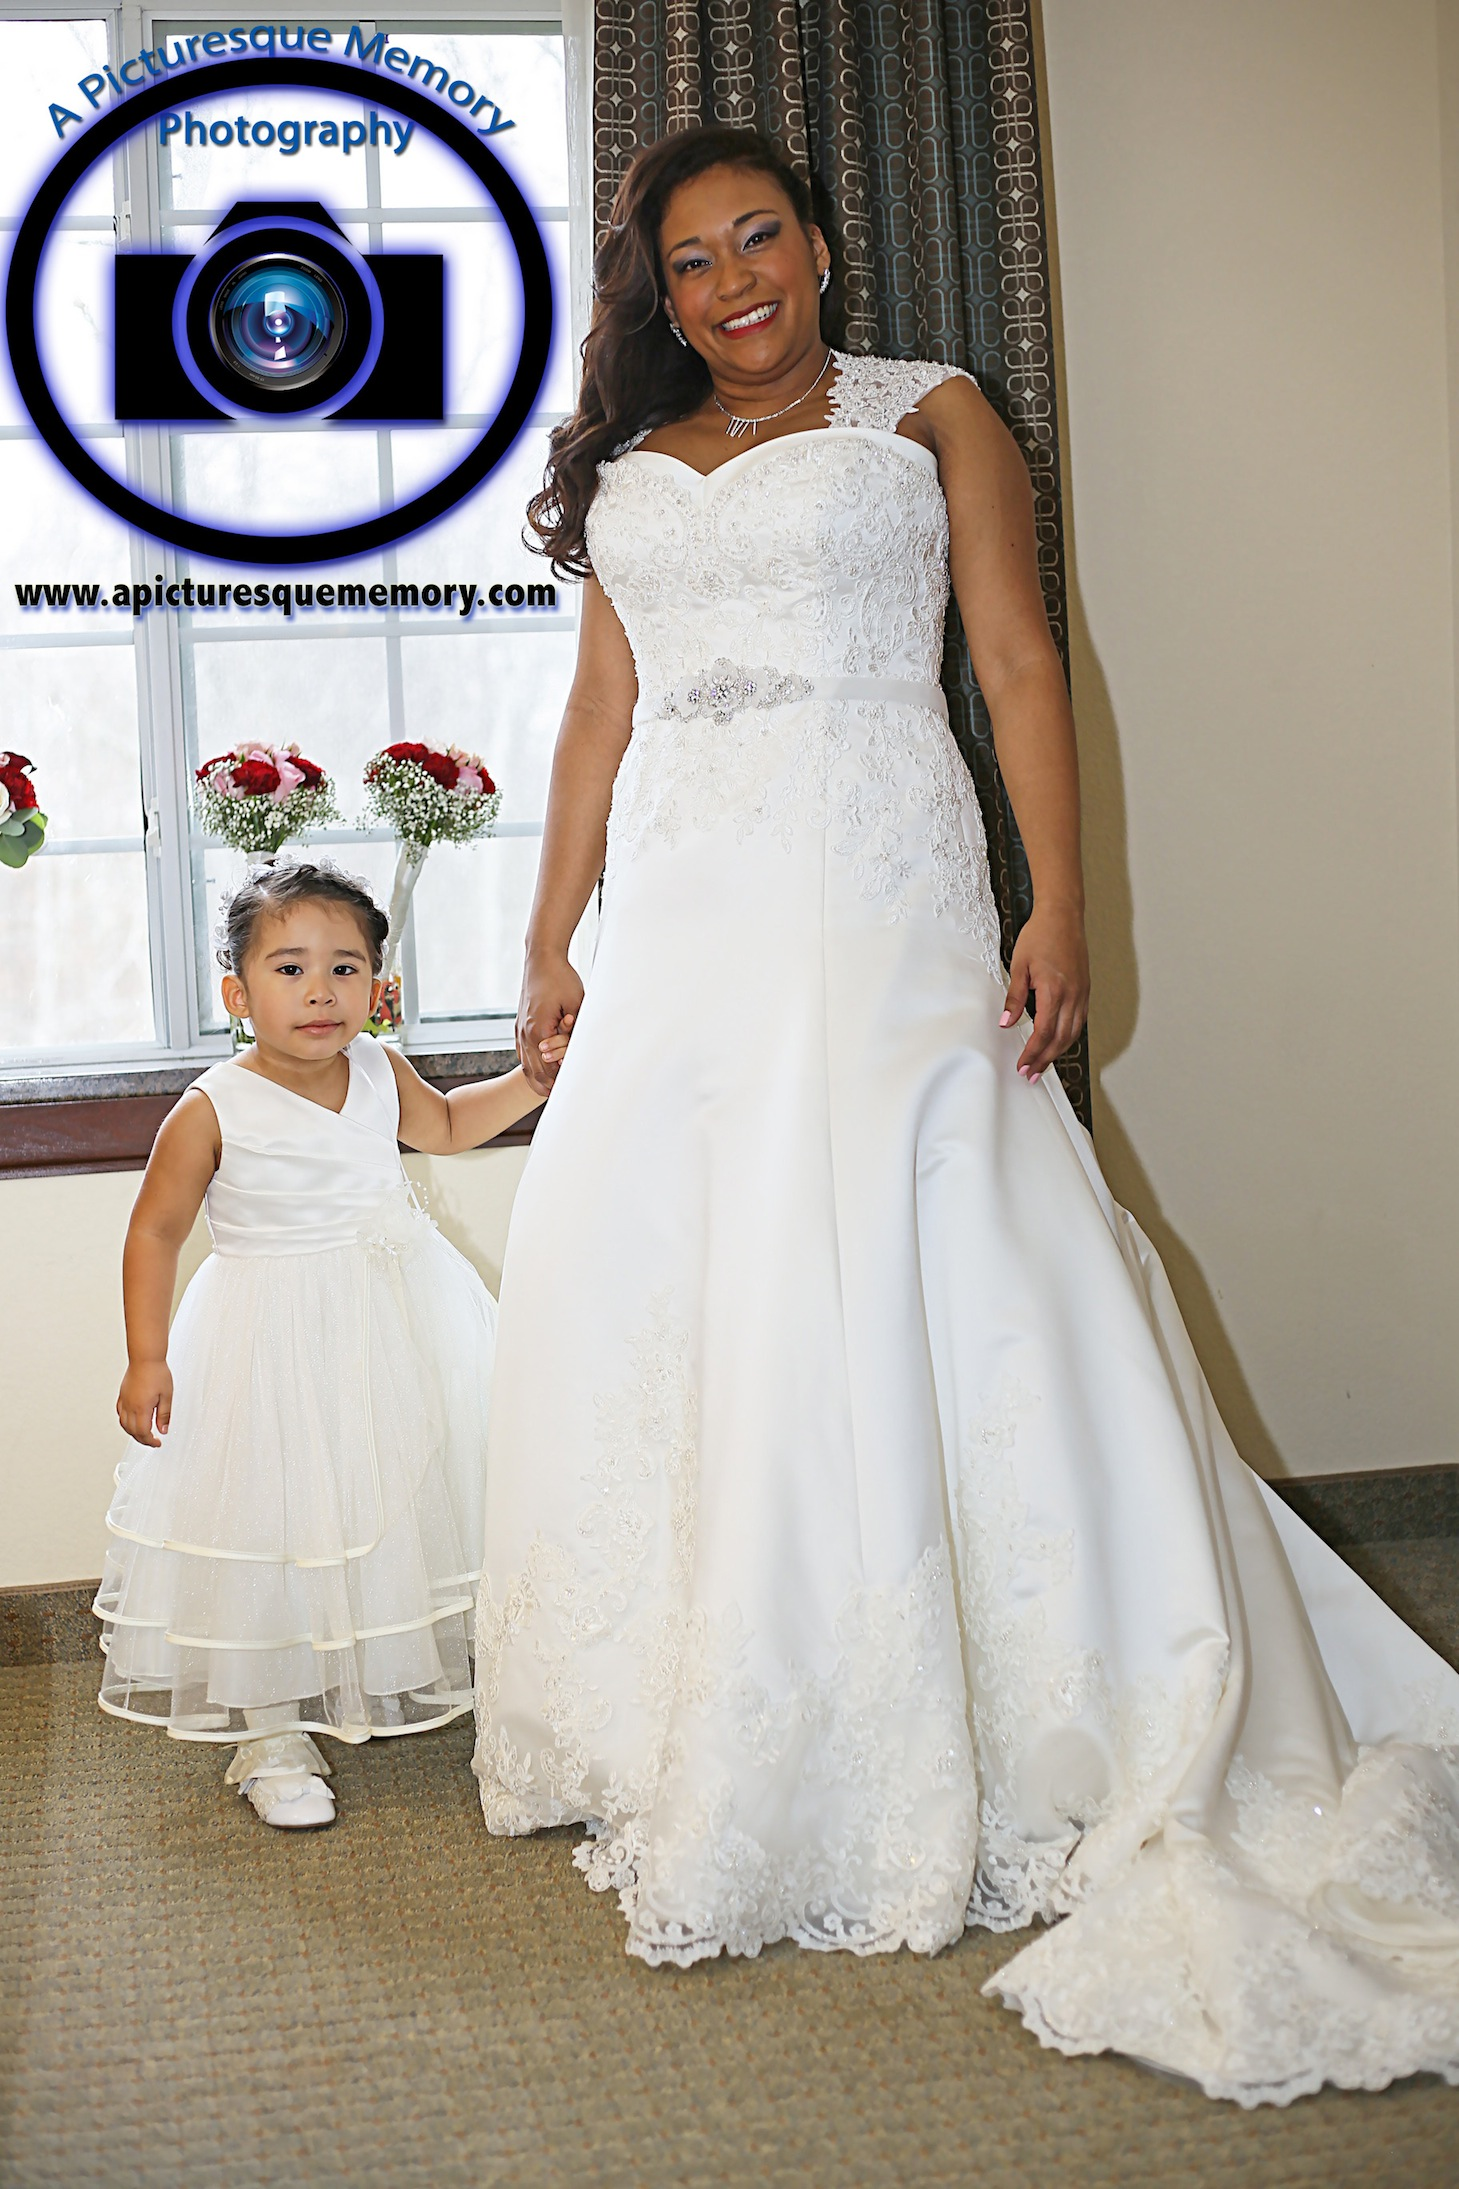 #njwedding, #njweddingphotography, #northbrunswickweddingphotographer#weddingphotos, #apicturesquememoryphotography, #staybridgesuitesweddingphotographer, #bride, #flowergirl, #motheranddaughter